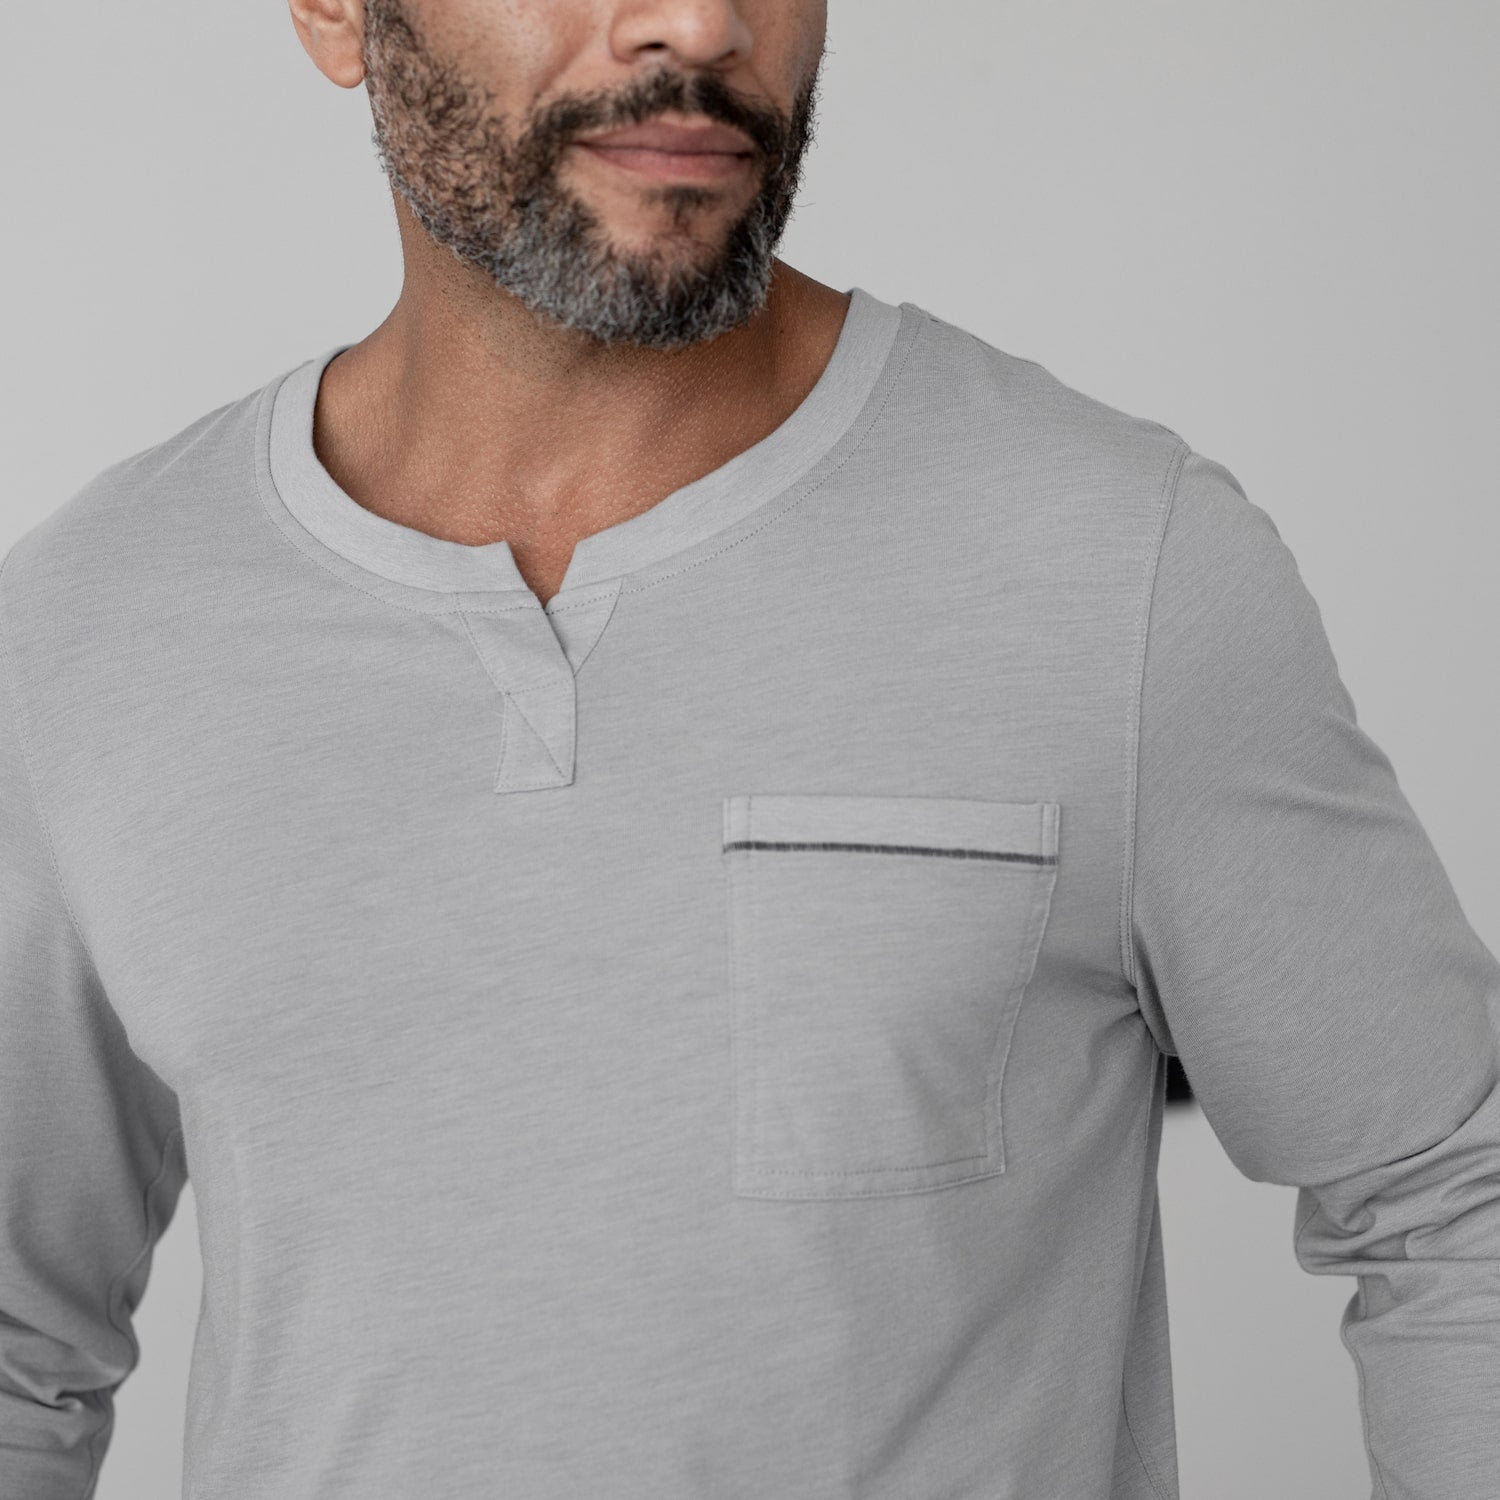 Lahgo Sleepwear Restore Long Sleeve Henley - #Moonstone